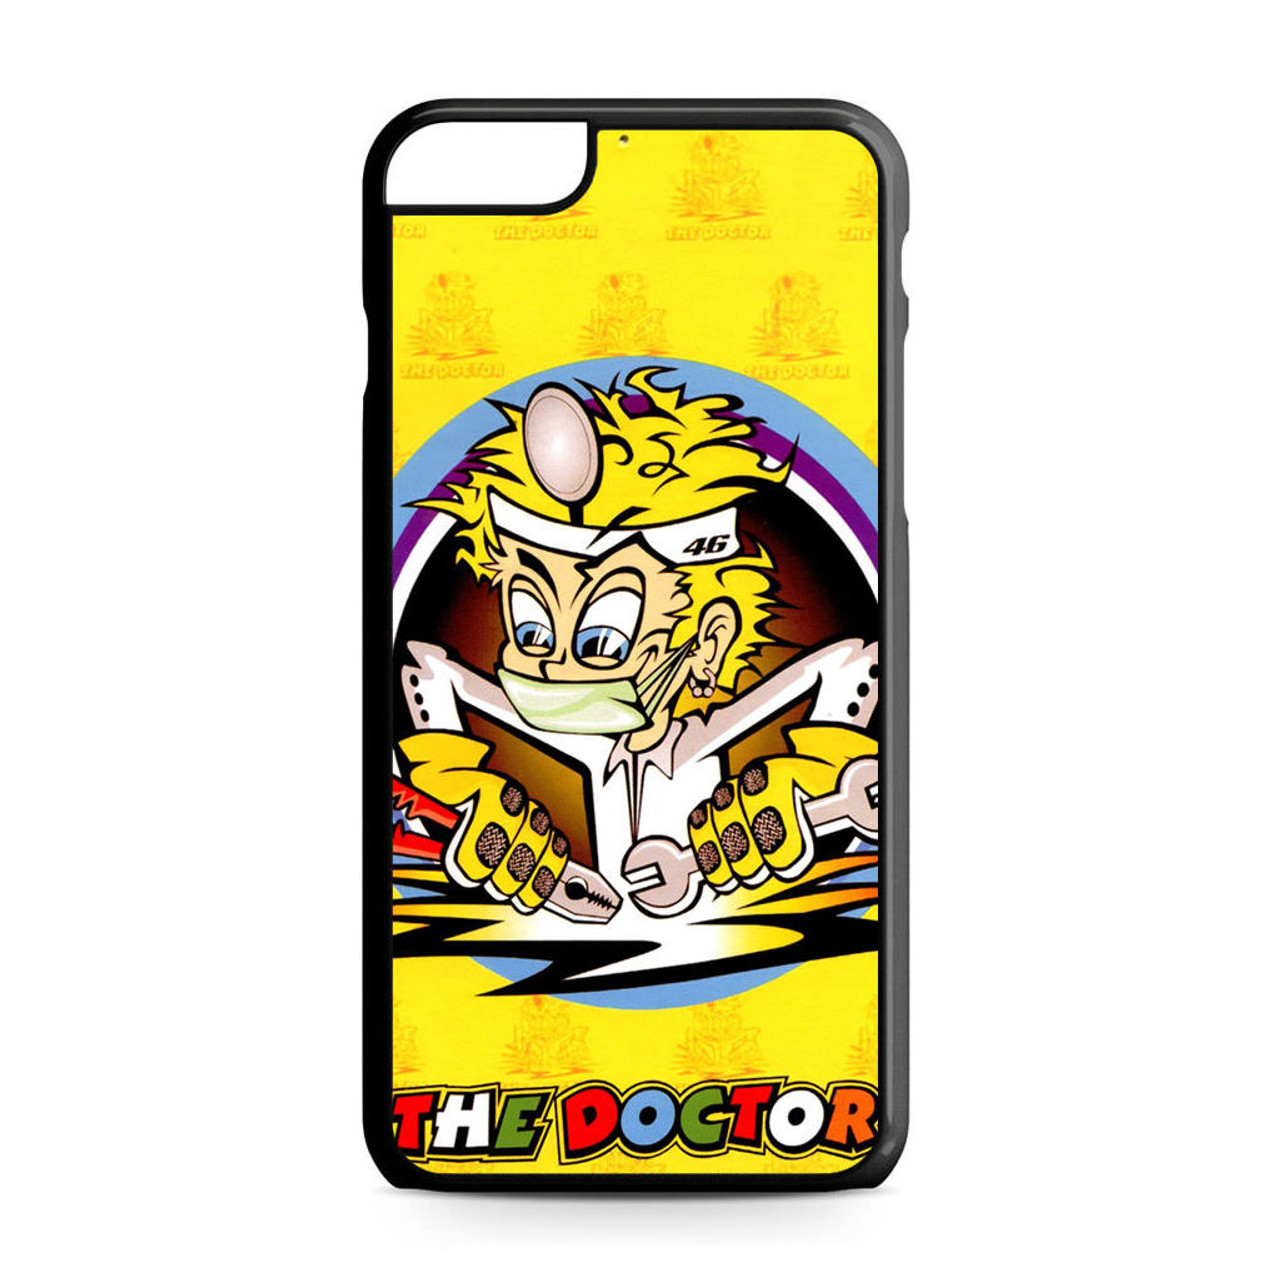 size 40 7dffd ea064 Valentino Rossi The Doctor iPhone 6 Plus/6S Plus Case